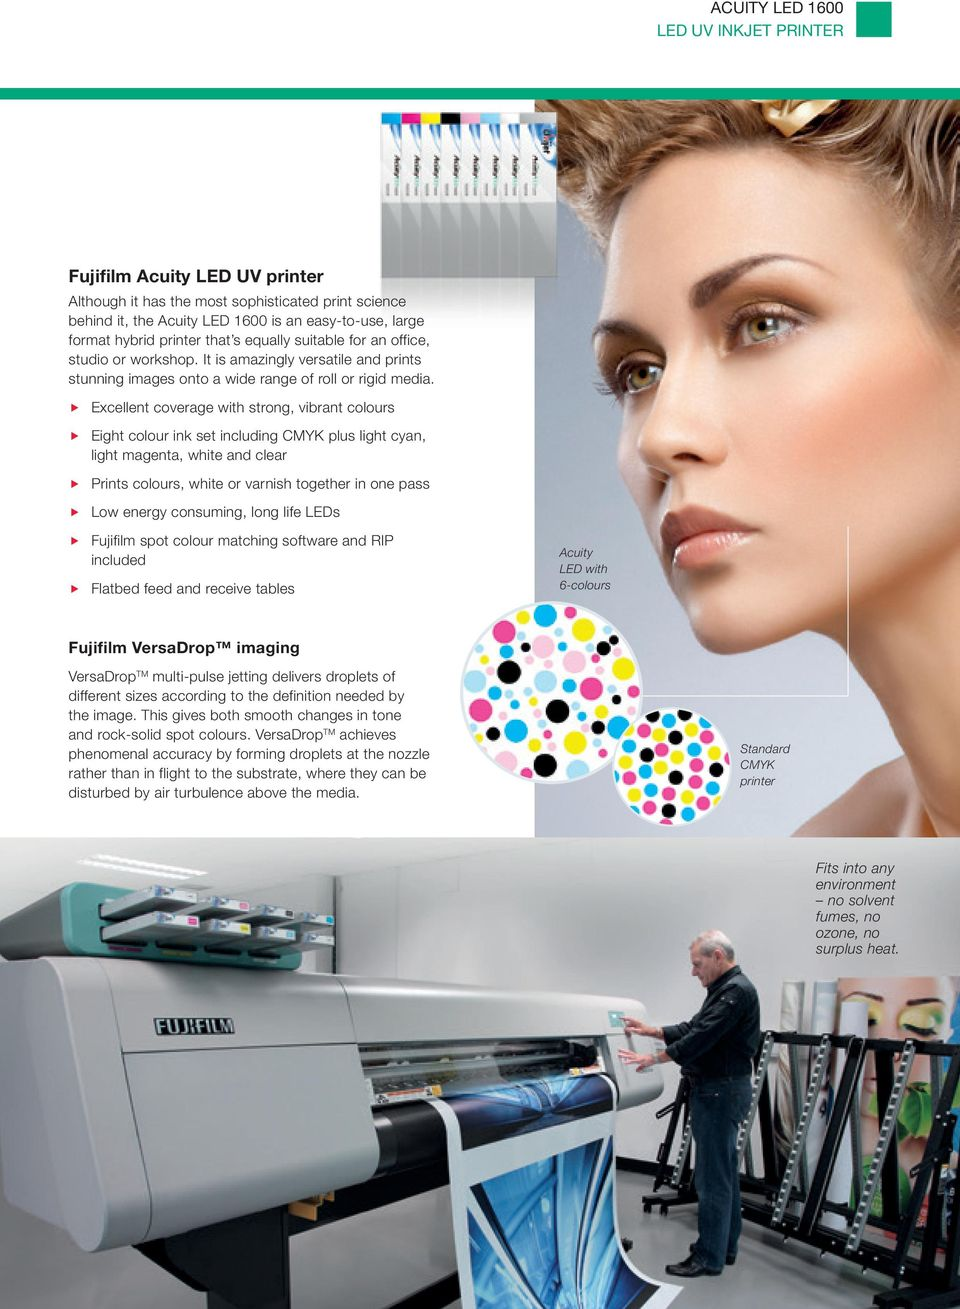 Excellent coverage with strong, vibrant colours Eight colour ink set including K plus light cyan, light magenta, white and clear Prints colours, white or varnish together in one pass Low energy